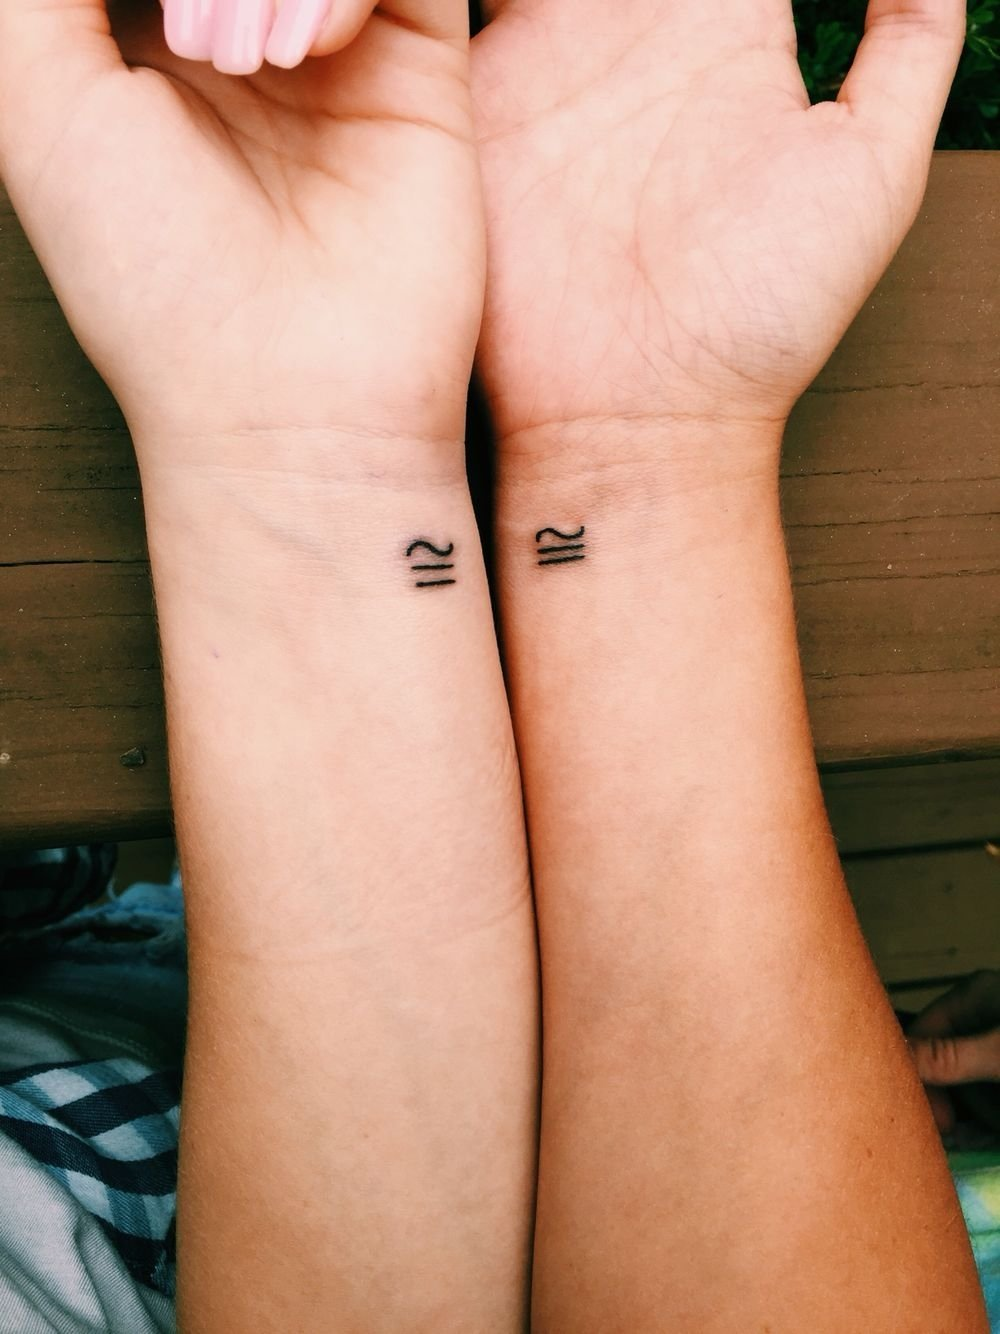 10 Great Matching Tattoo Ideas For Friends best friend tattoo congruent meaning different yet the same 2021